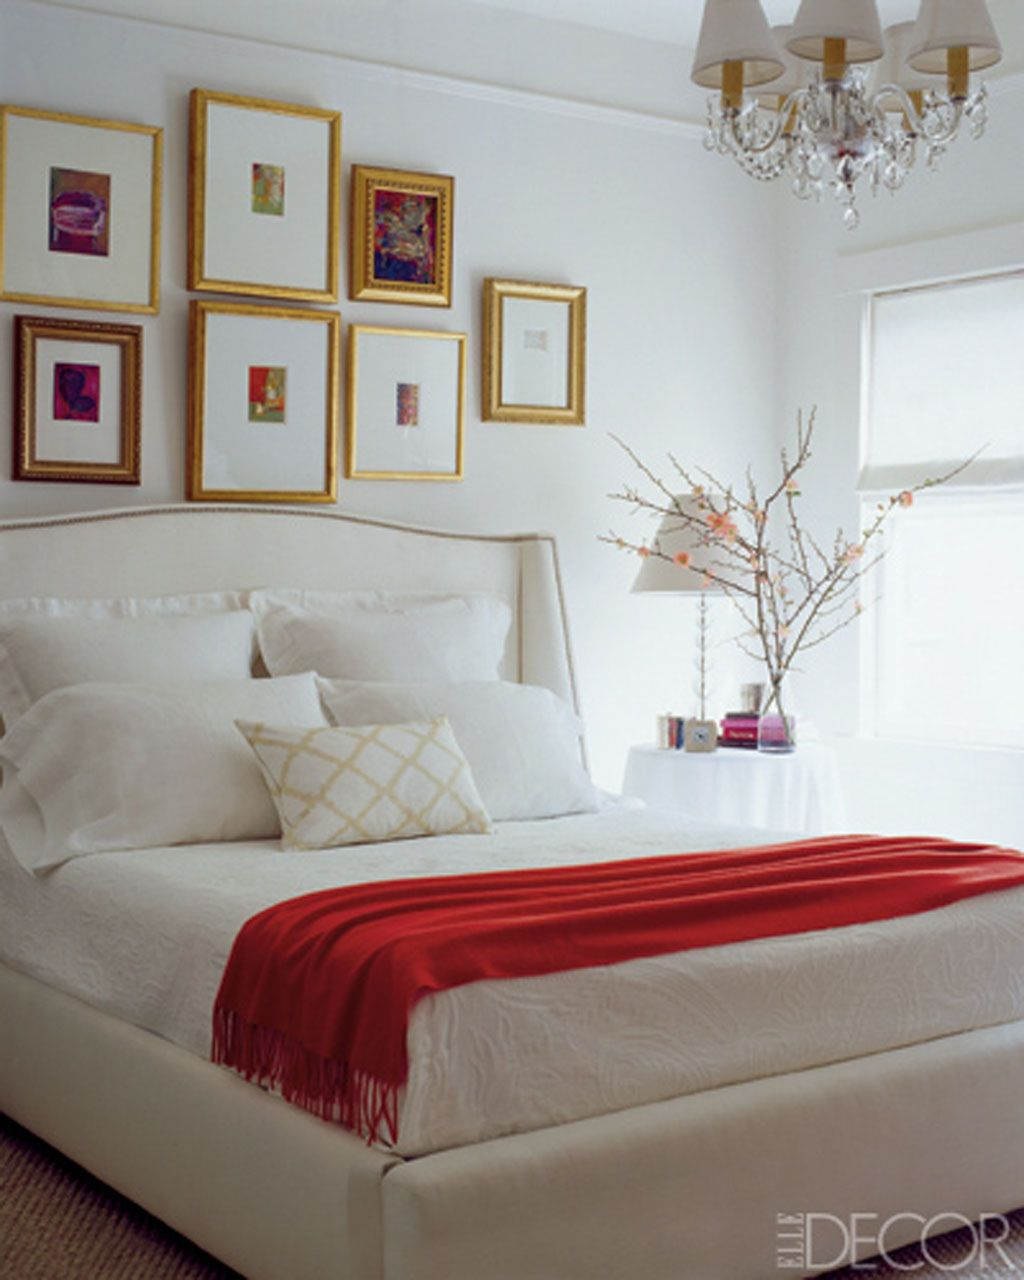 White and red bed sheets - 25 White Bedroom Furniture Design Ideas